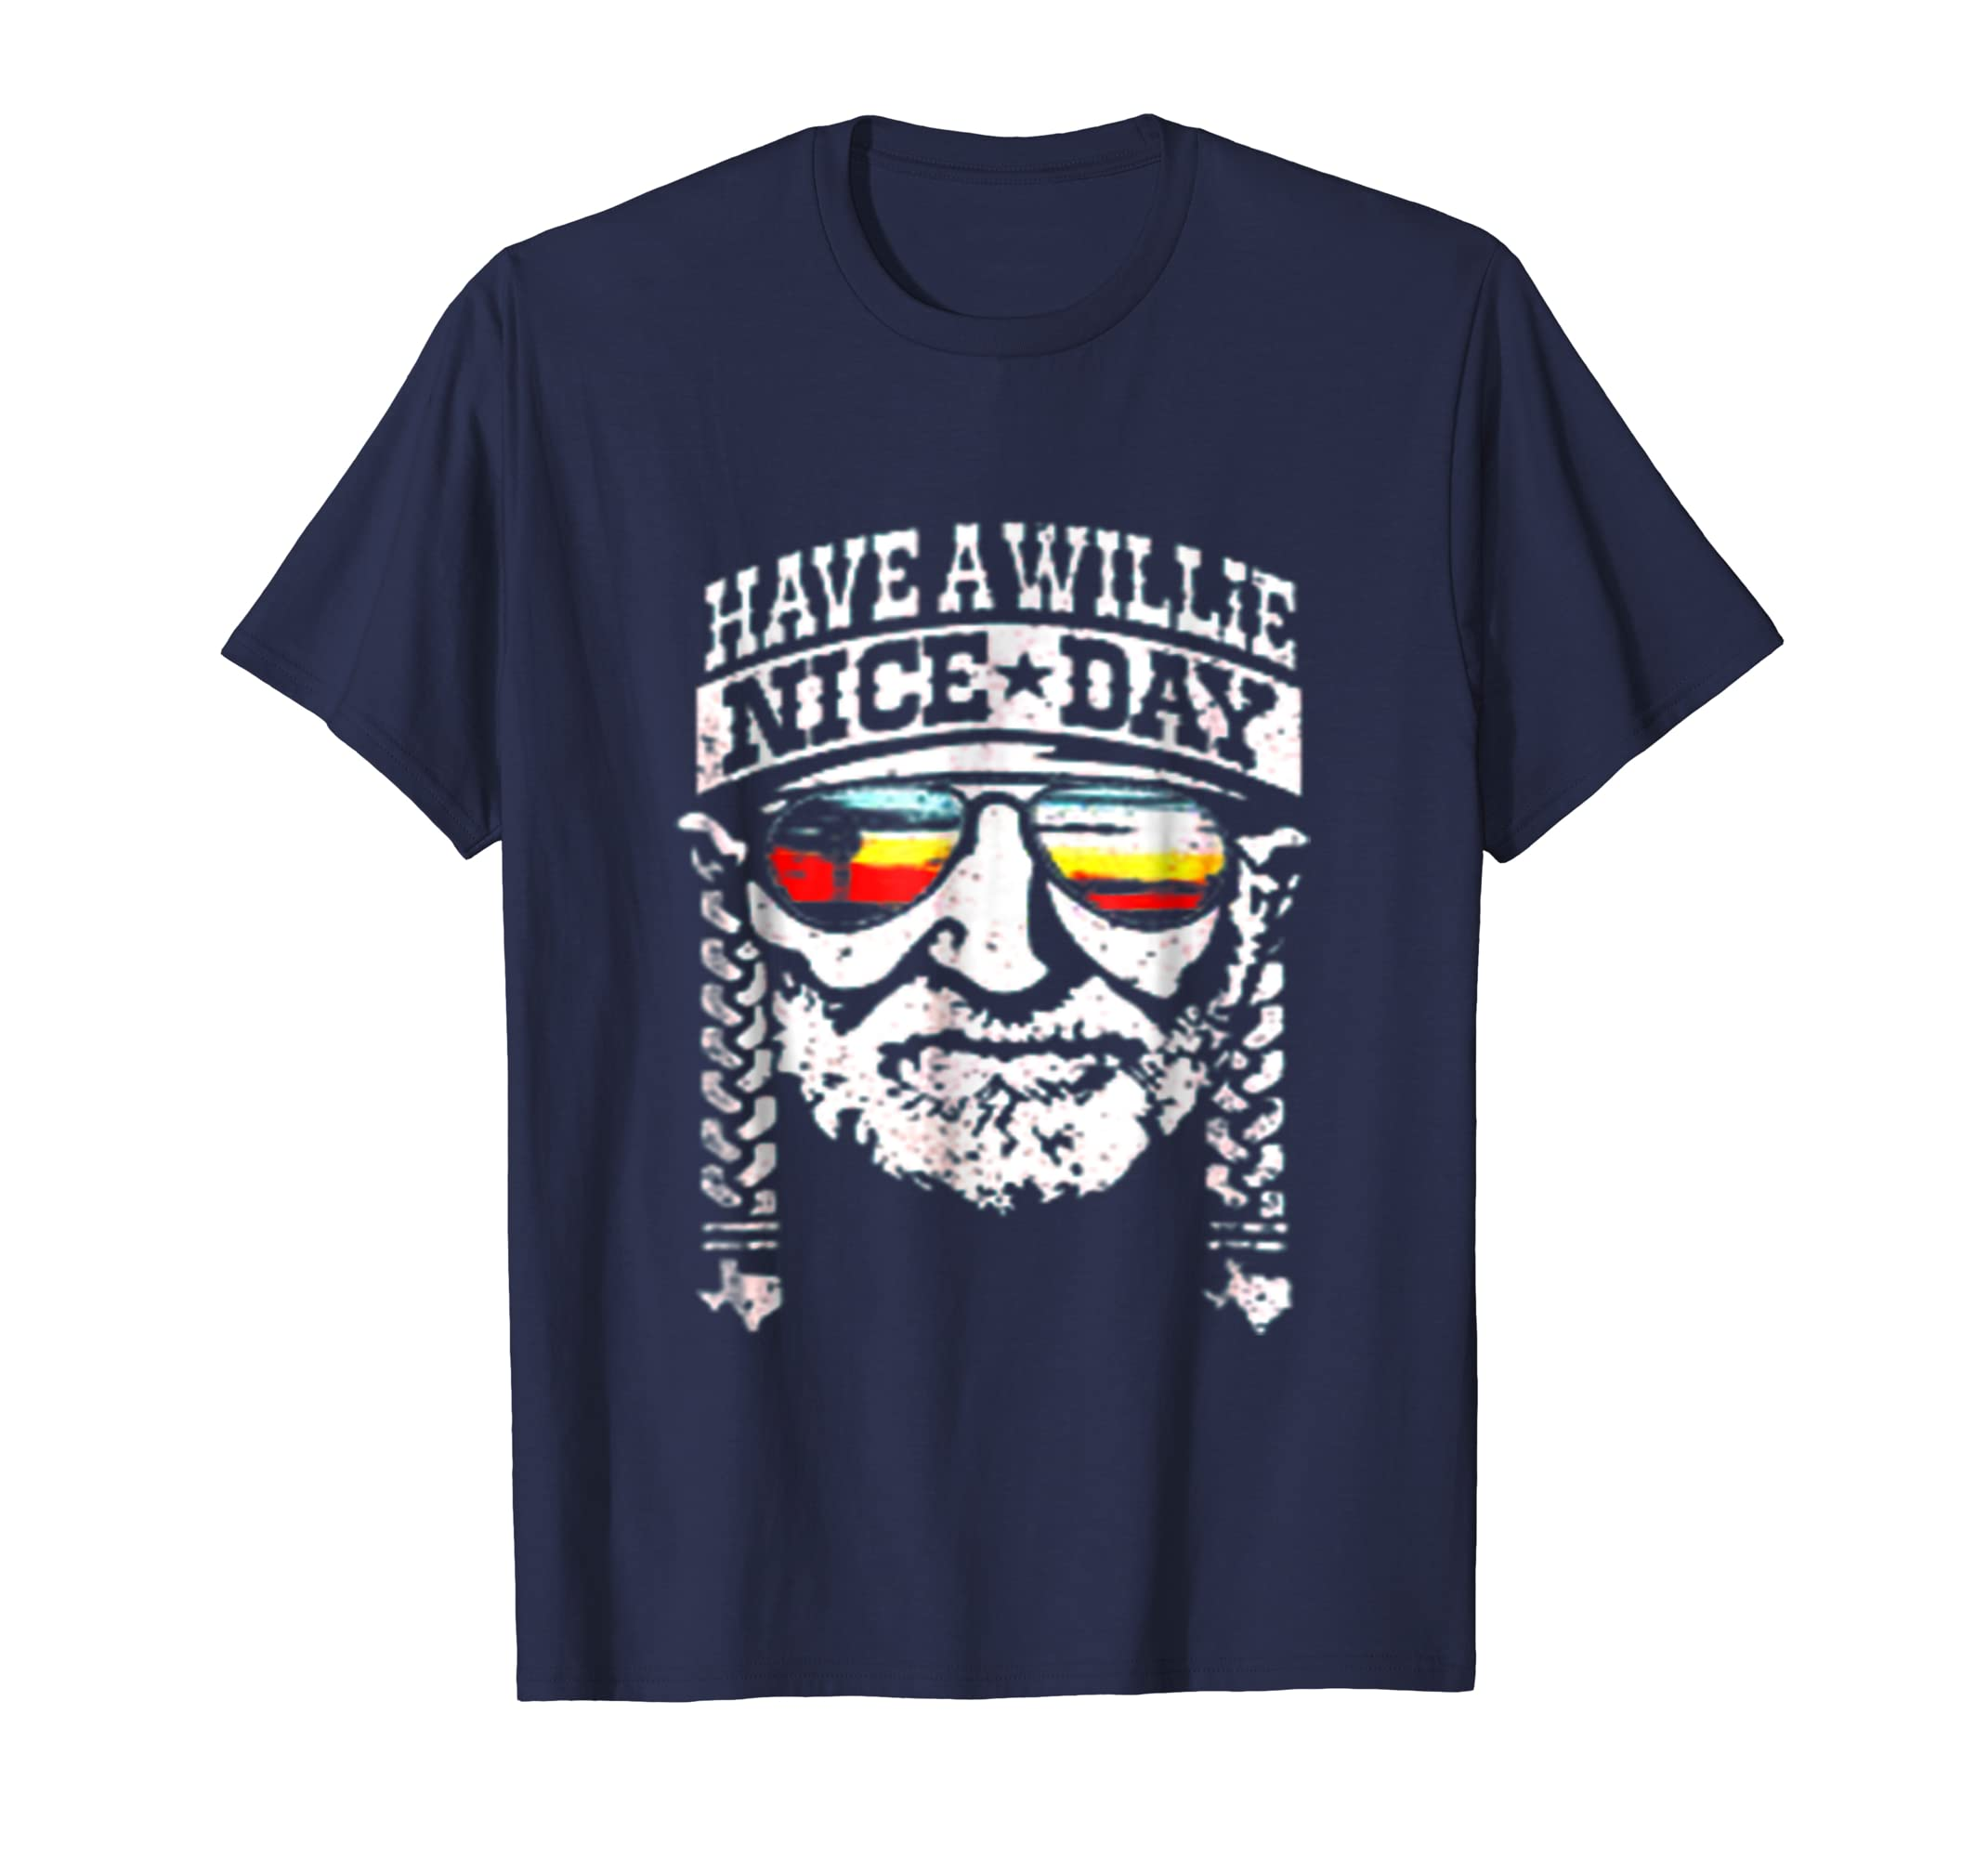 _Have A Willie Nice Day T Shirt-azvn